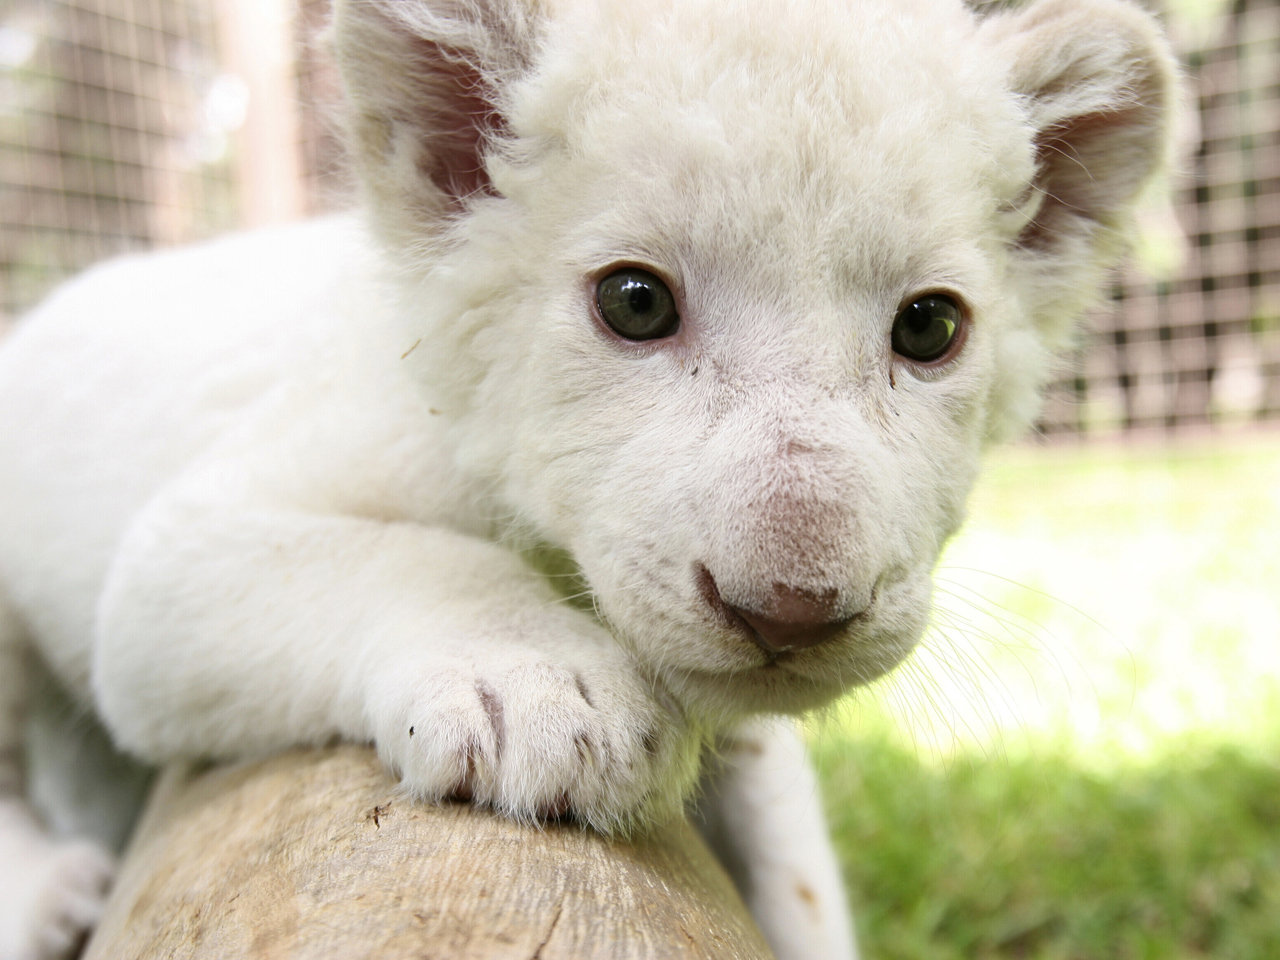 Las Vegas: Three white lion cubs take up residence at the Mirage ...